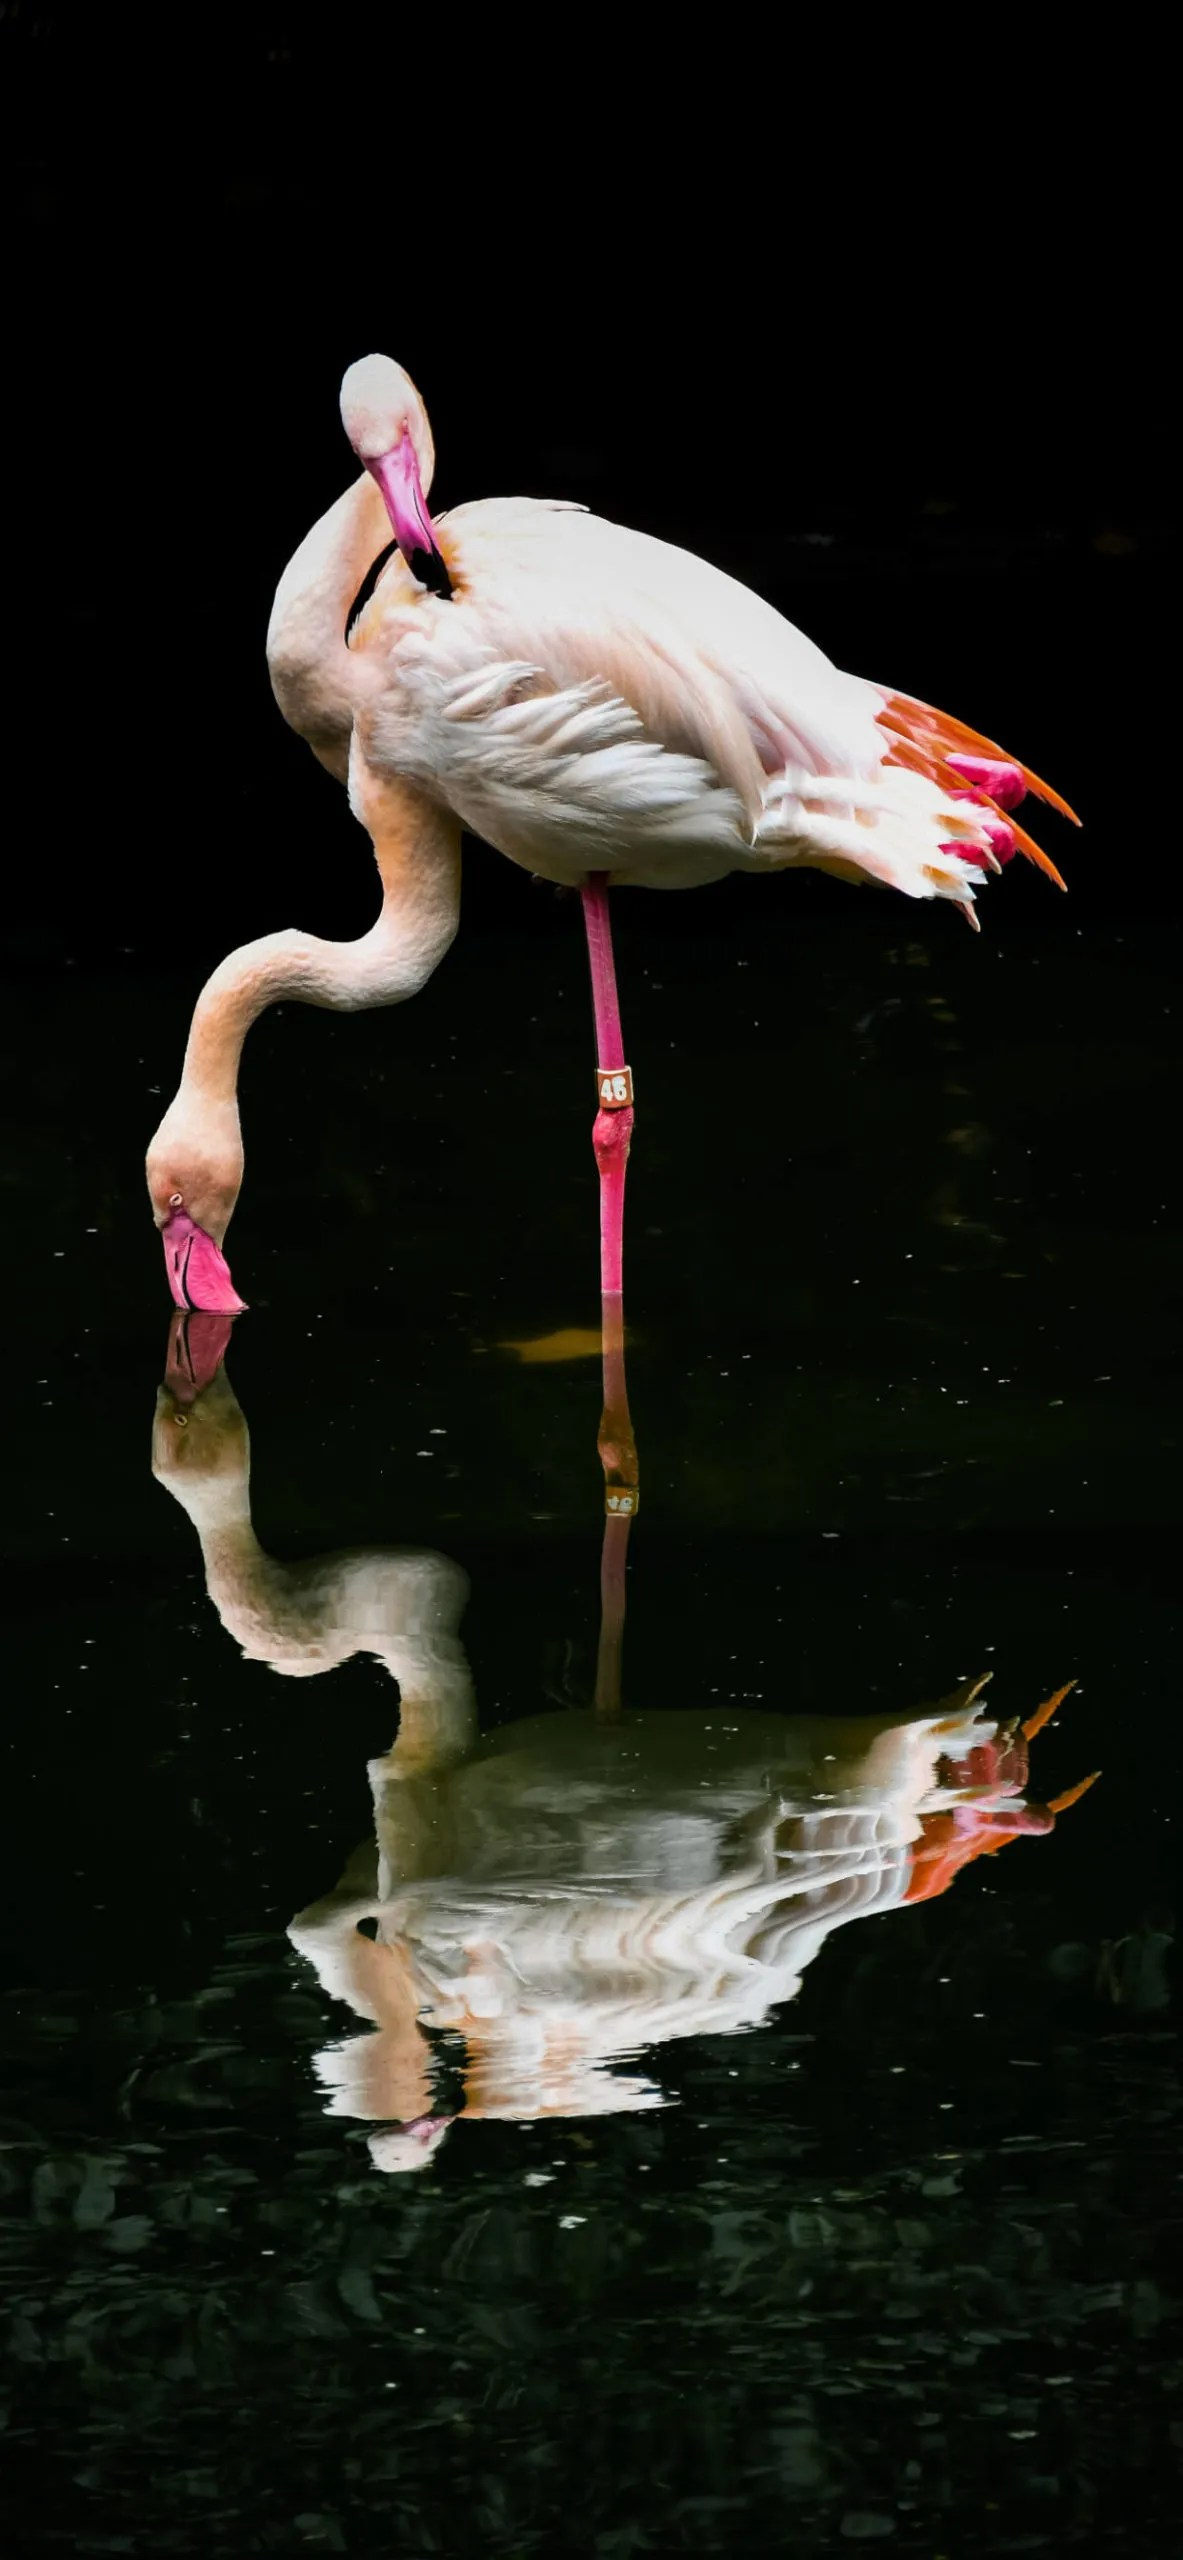 iPhone wallpapers reflection flamingo scaled Reflection